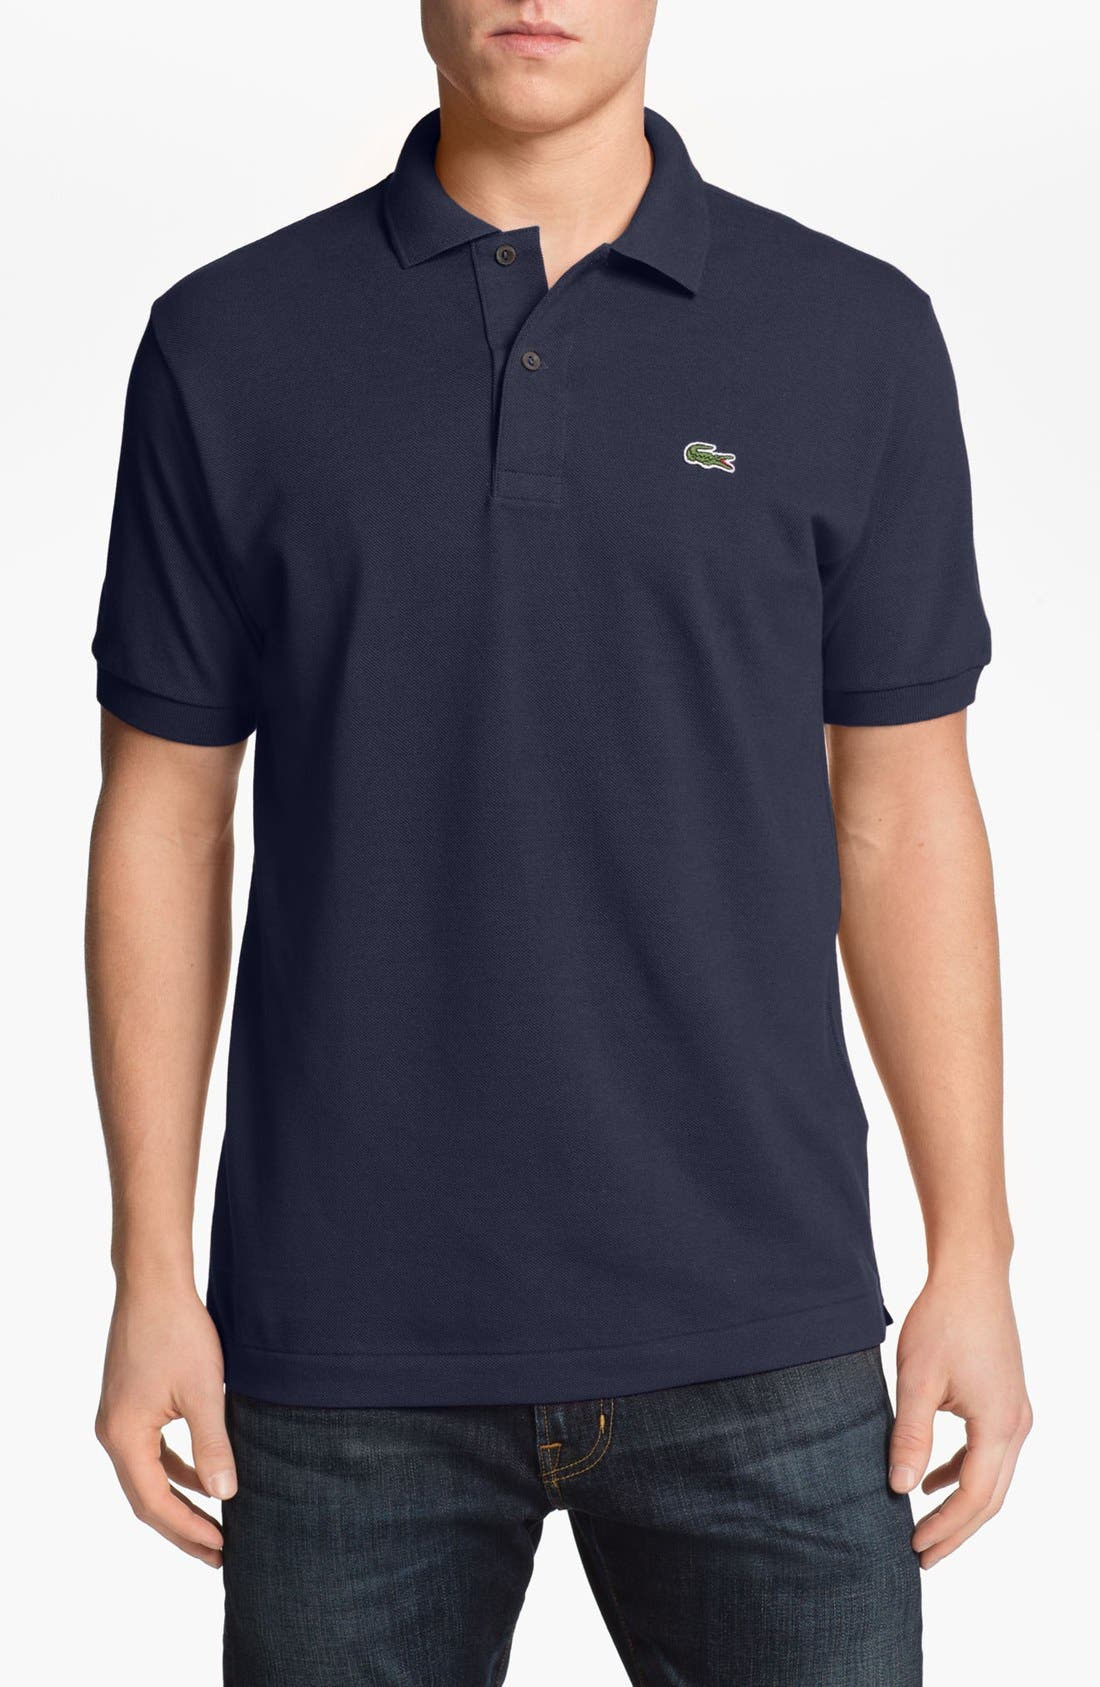 Main Image - Lacoste Classic Piqué Polo (Tall)